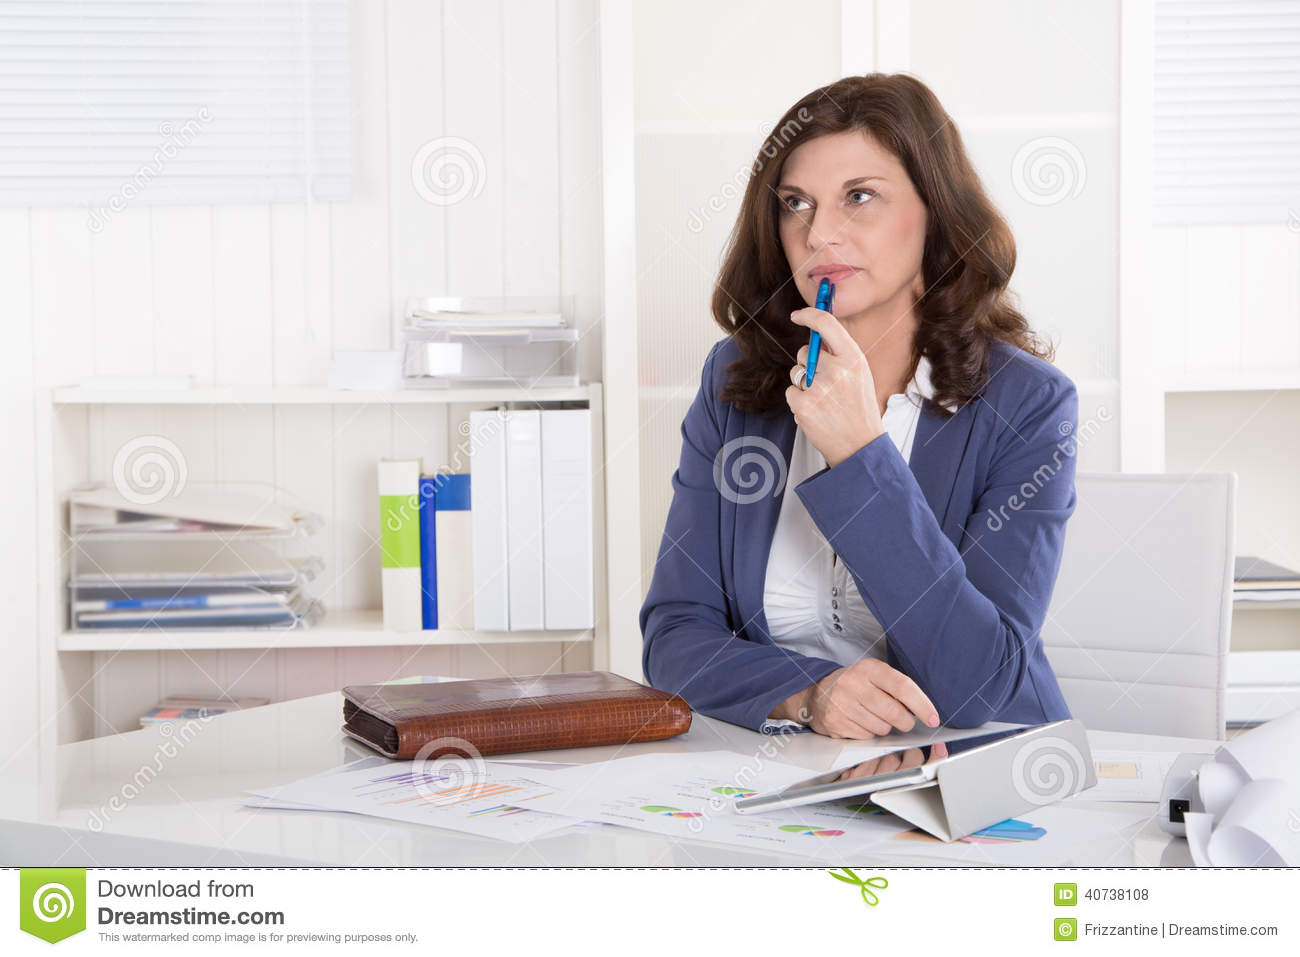 Unhappy older pensive business woman sitting at desk.